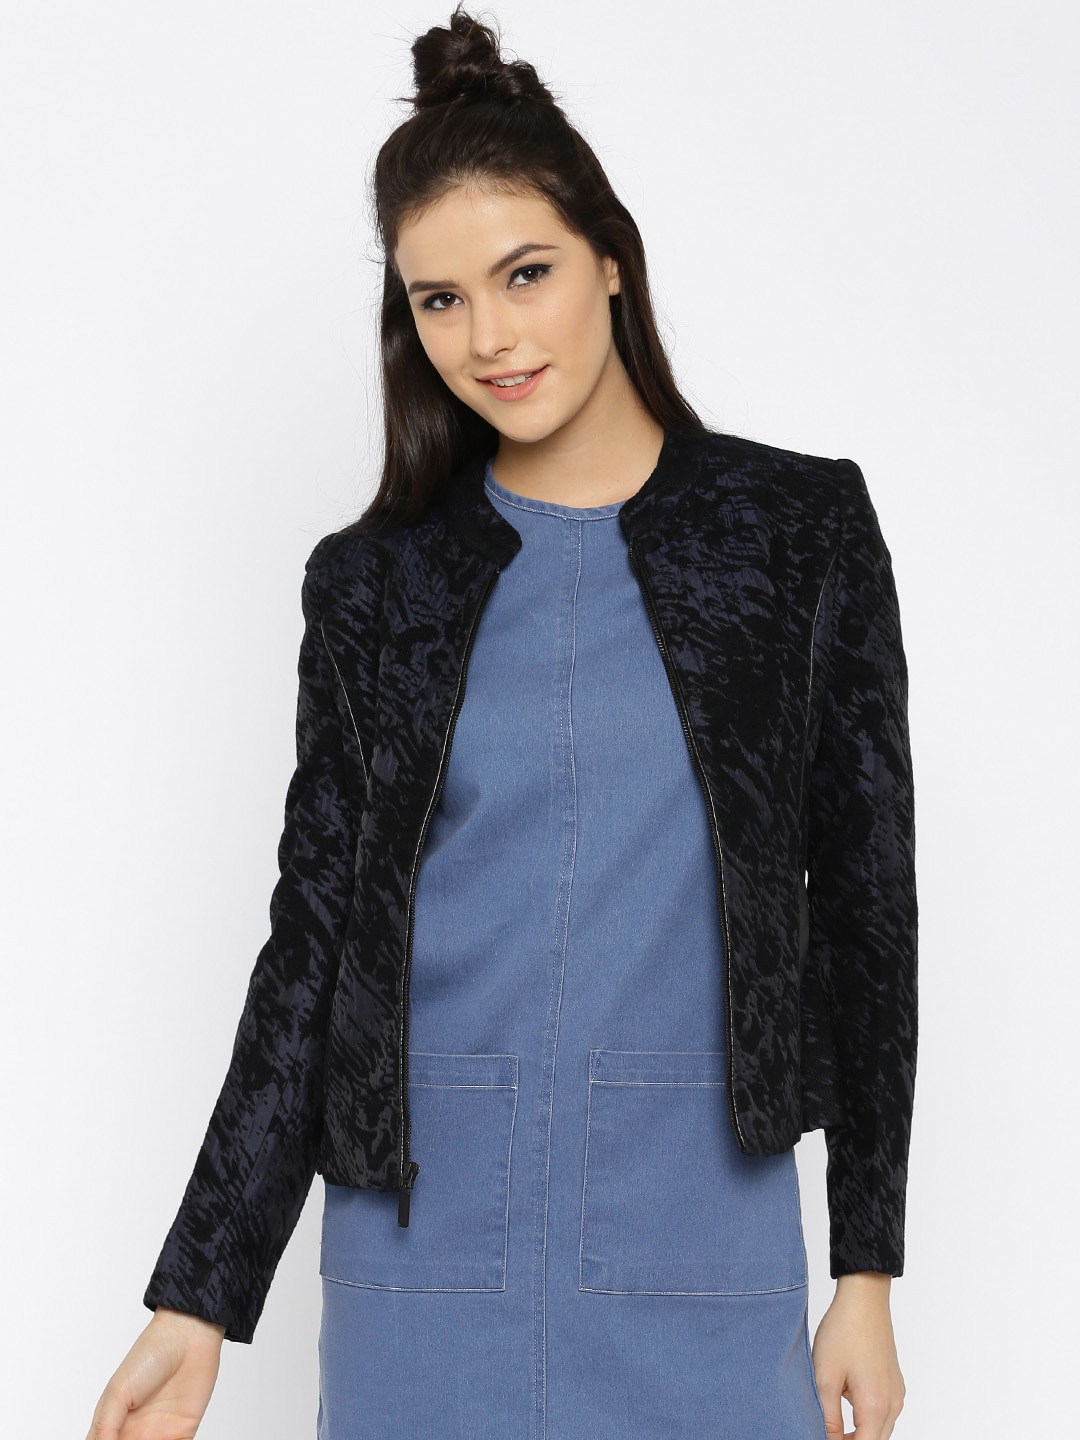 955e8490177 Madame 8907184847884 Navy Bomber Jacket - Best Price in India ...